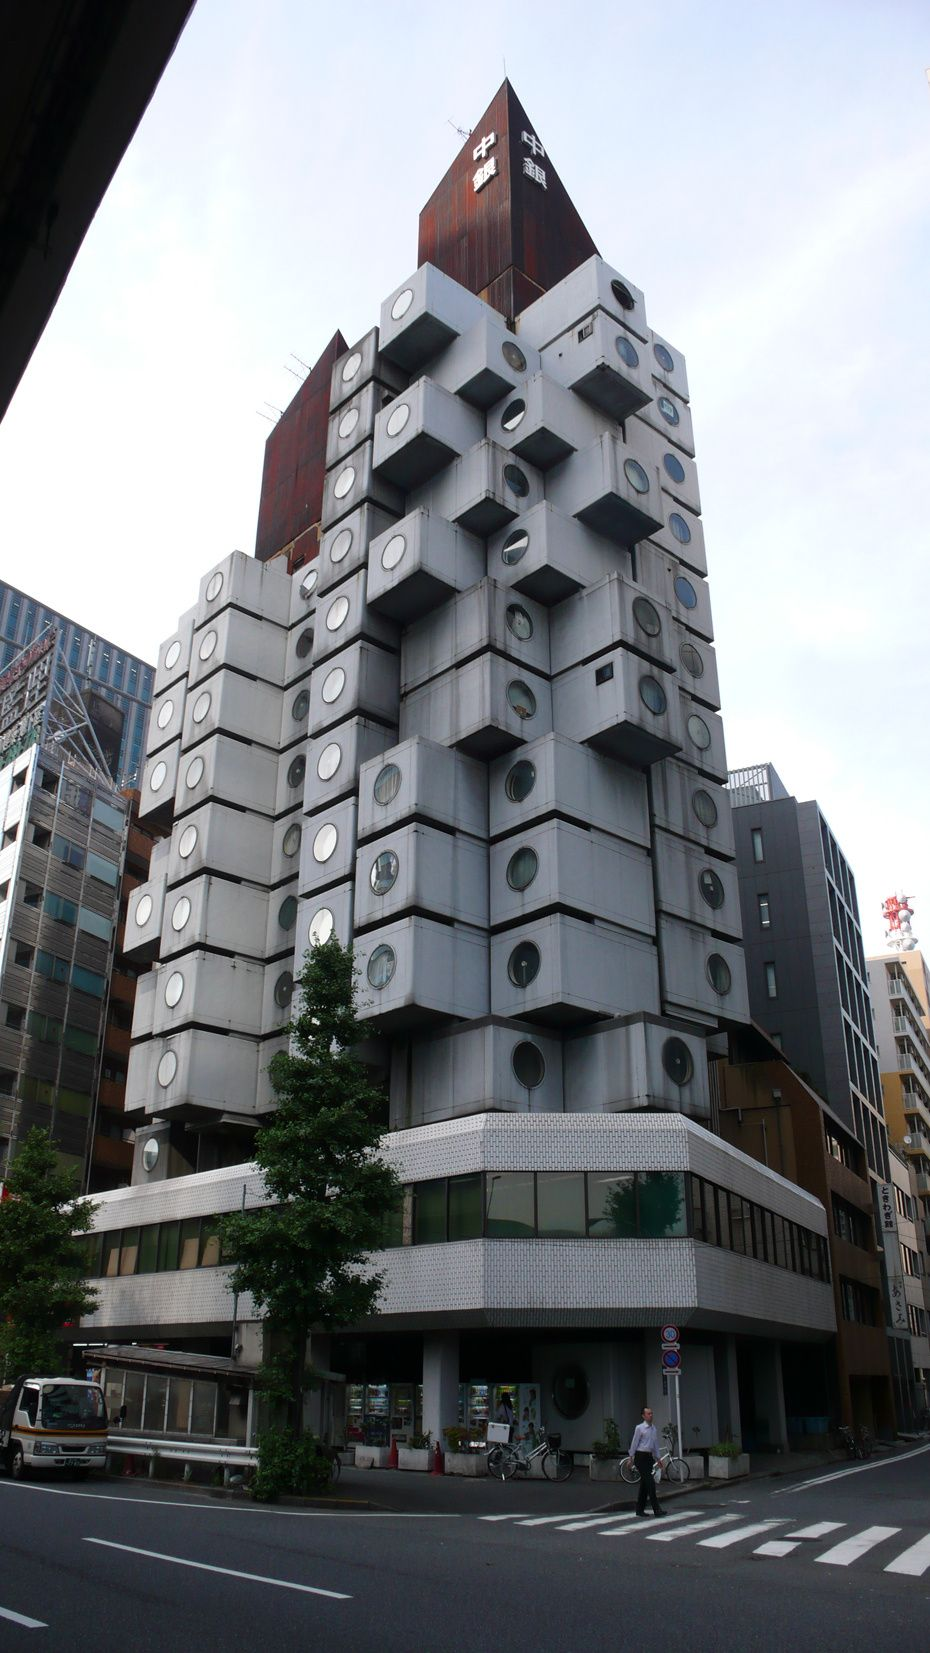 Nakagin Capsule Tower Architectural Architecture